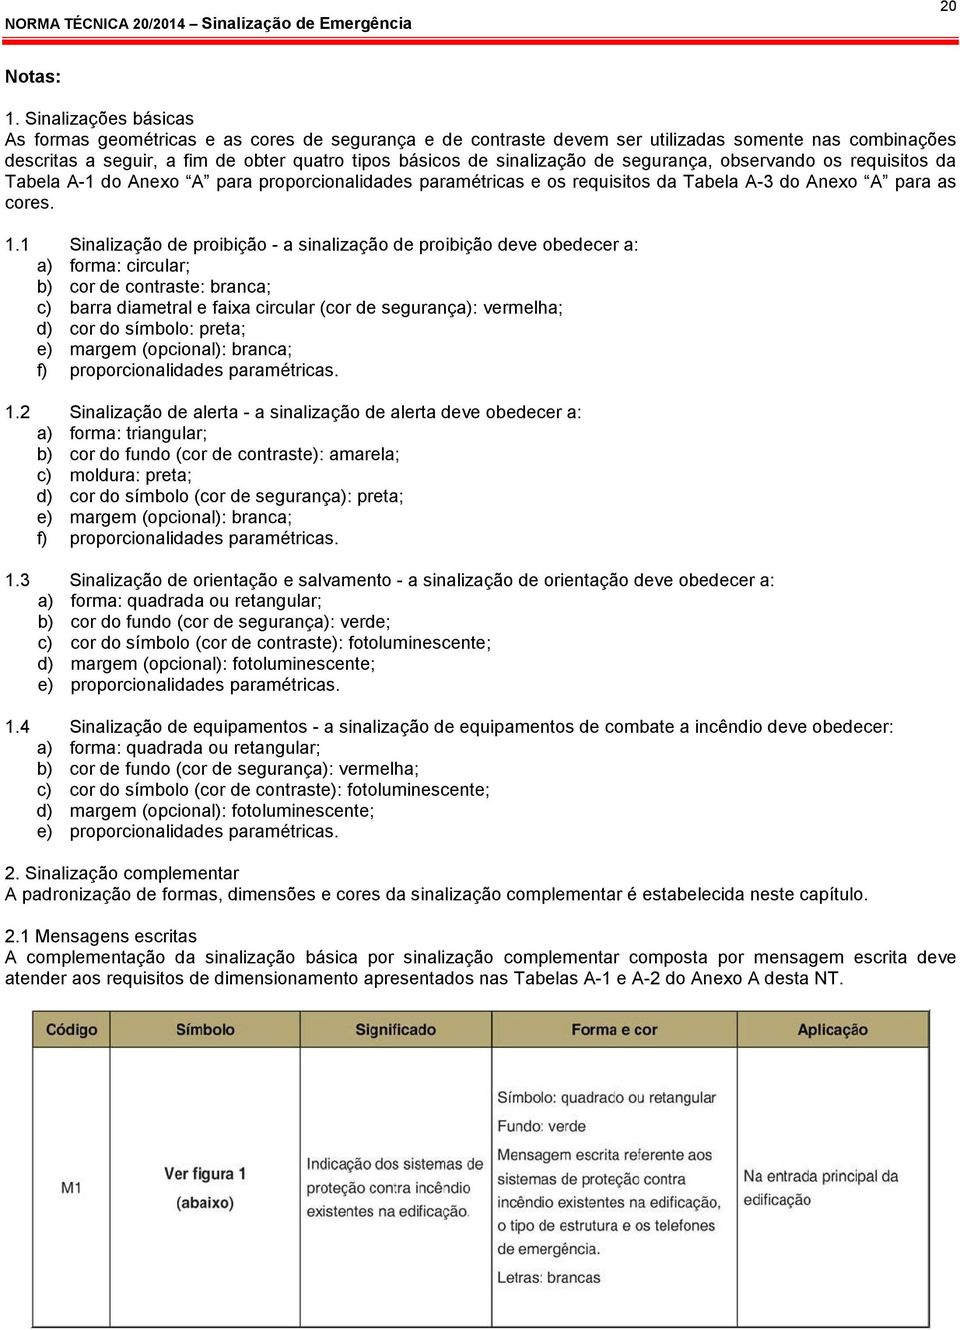 de segurança, observando os requisitos da Tabela A-1 do Anexo A para proporcionalidades paramétricas e os requisitos da Tabela A-3 do Anexo A para as cores. 1.